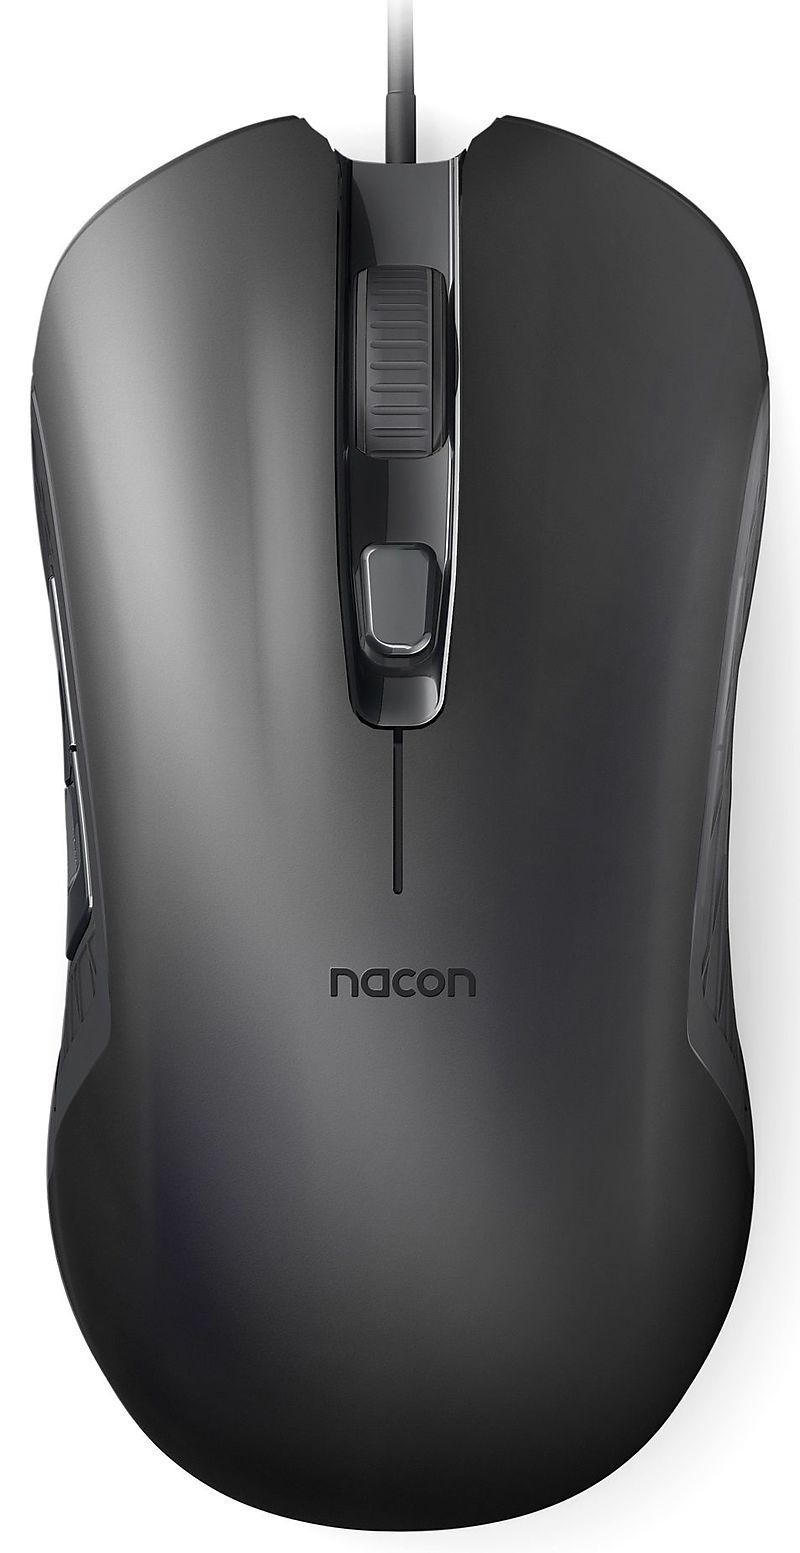 NACON OPTICAL GAMING MOUSE 110 Black_1